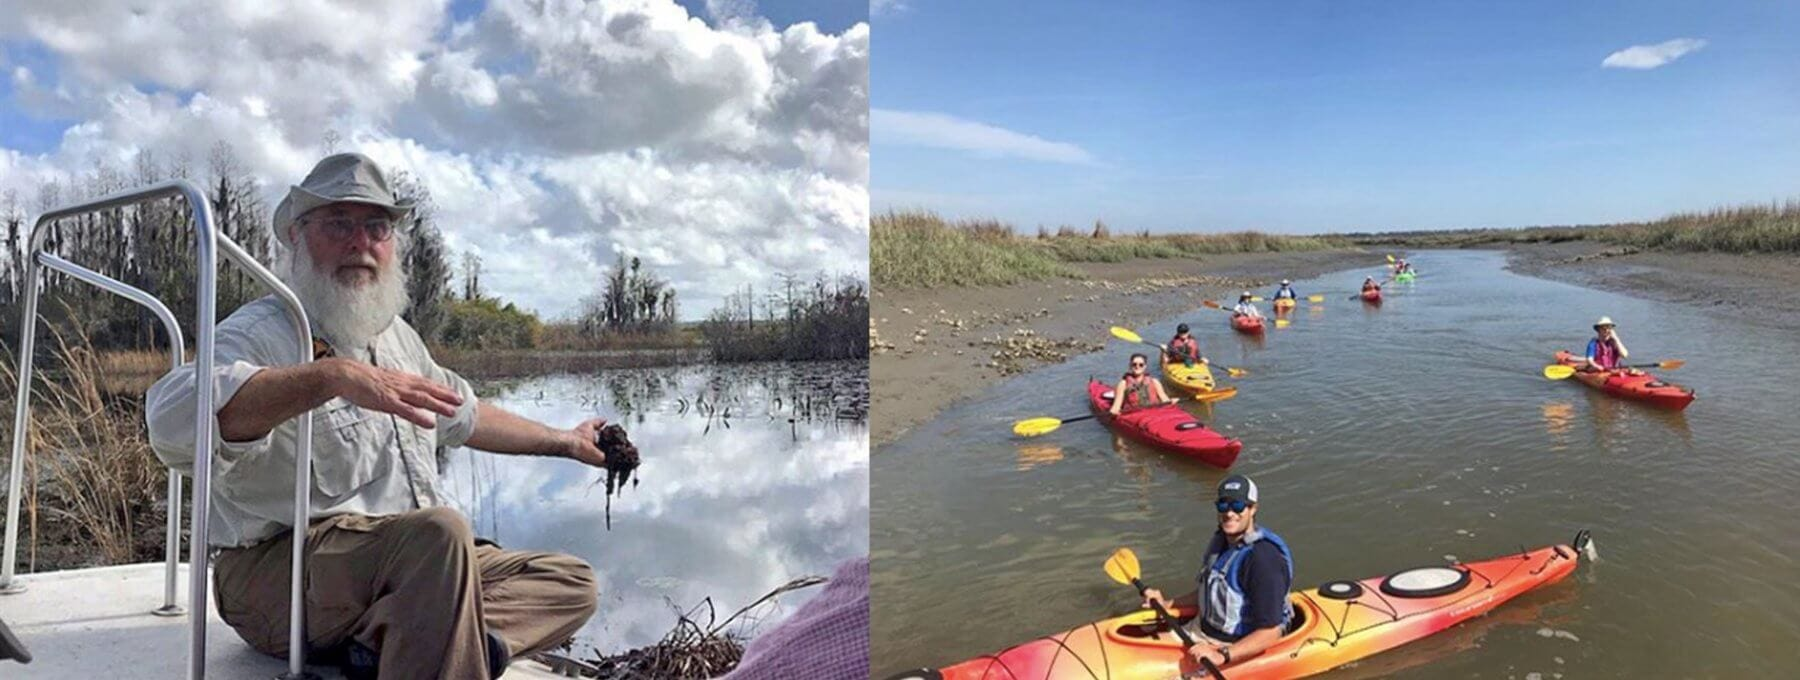 One Hundred Miles works to preserve Georgia's coast; hosts a UGA Marine Extension's Master Naturalist program (left) and encourages those to enjoy the beauty — and protect — water in coastal Georgia (right)./Photo One Hundred Miles (left) and Southeast Adventure Outfitters (right)